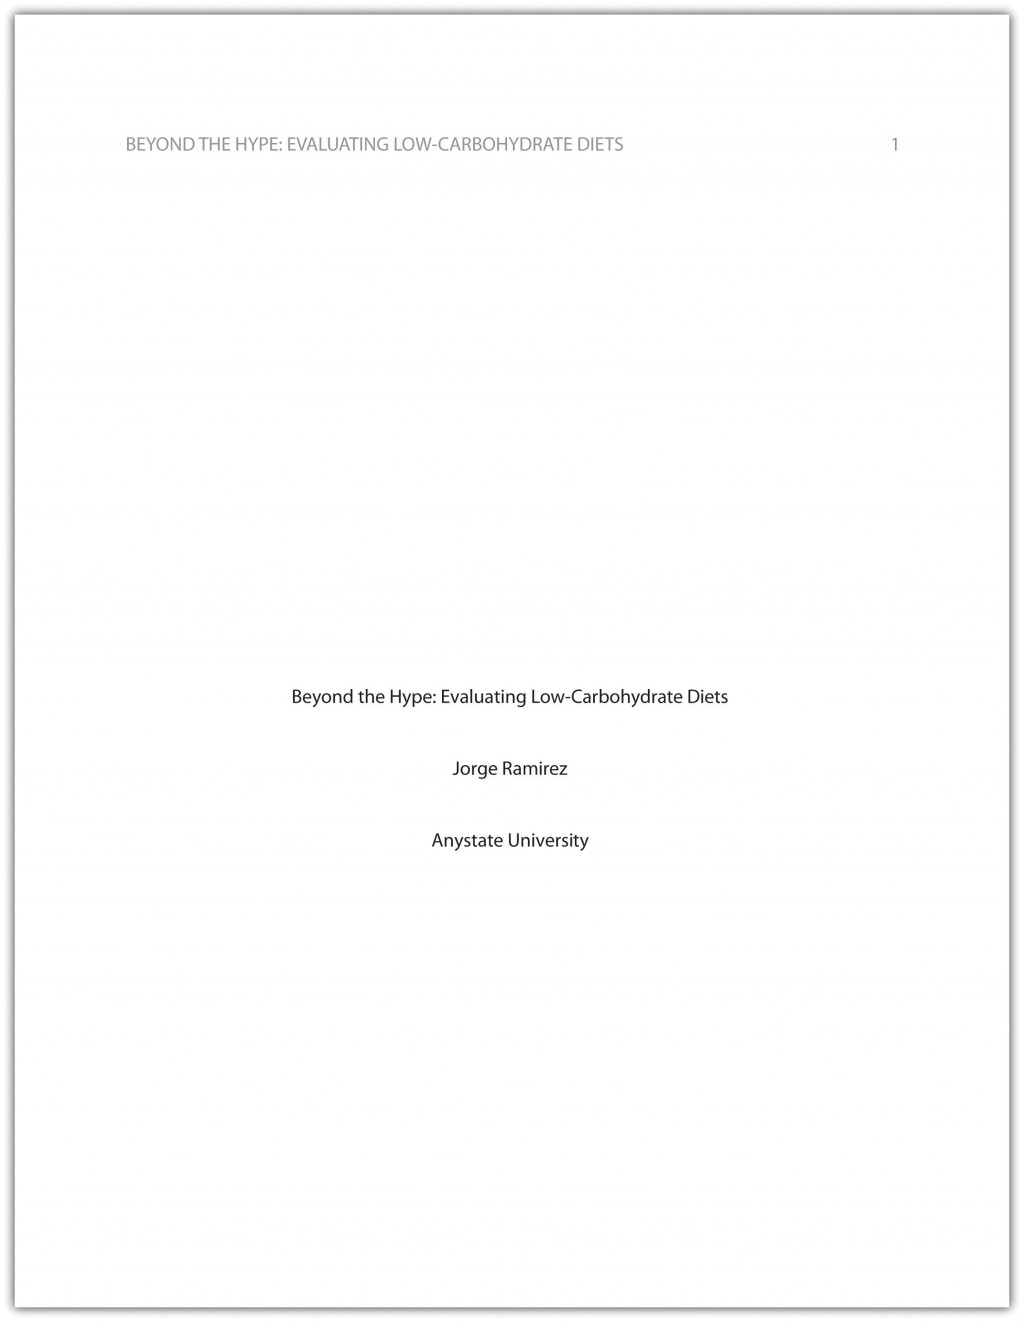 002 Research Paper Cover Page Apa Excellent Reference Format Sample Large